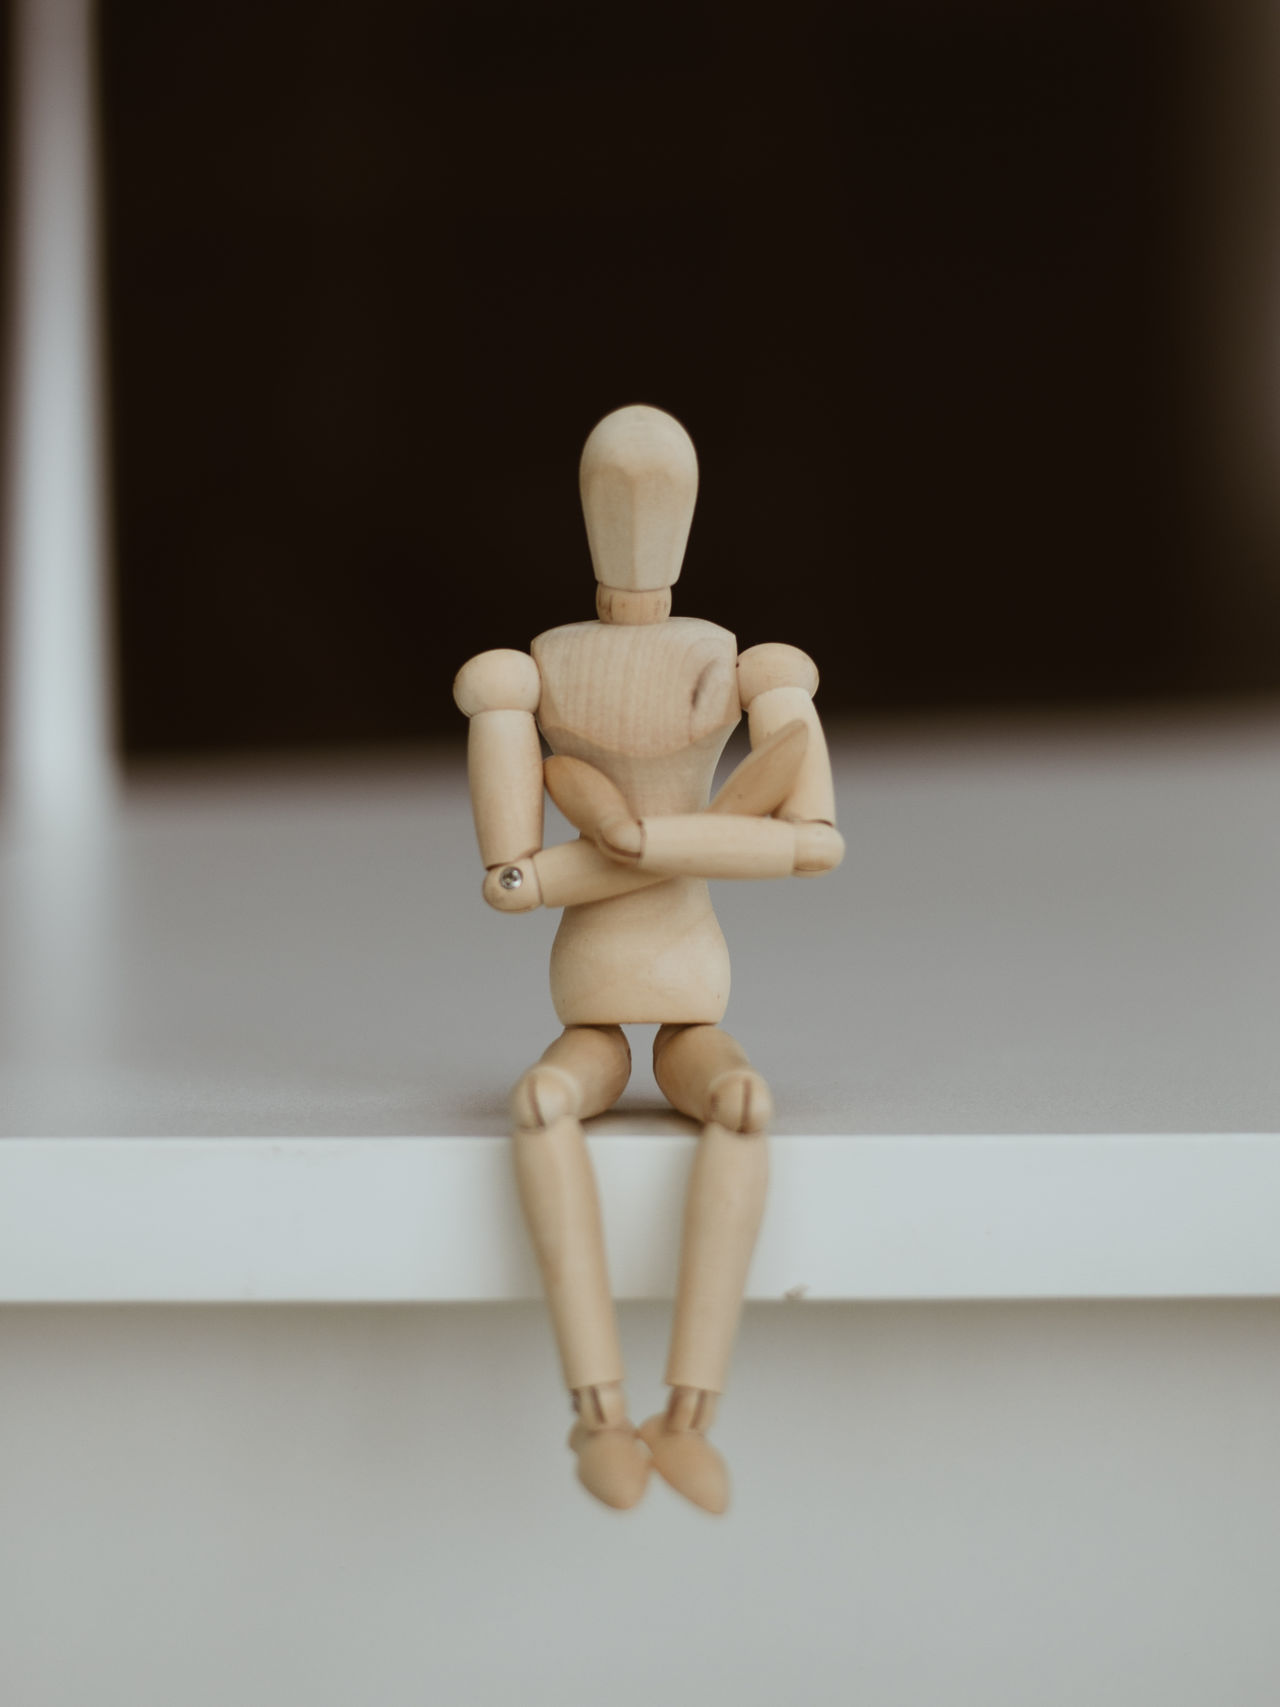 Wooden Man - Lonely figure sitting alone Alone Background Close-up Day Figurine  Human Representation Indoors  No People Surreal Wood - Material Wooden